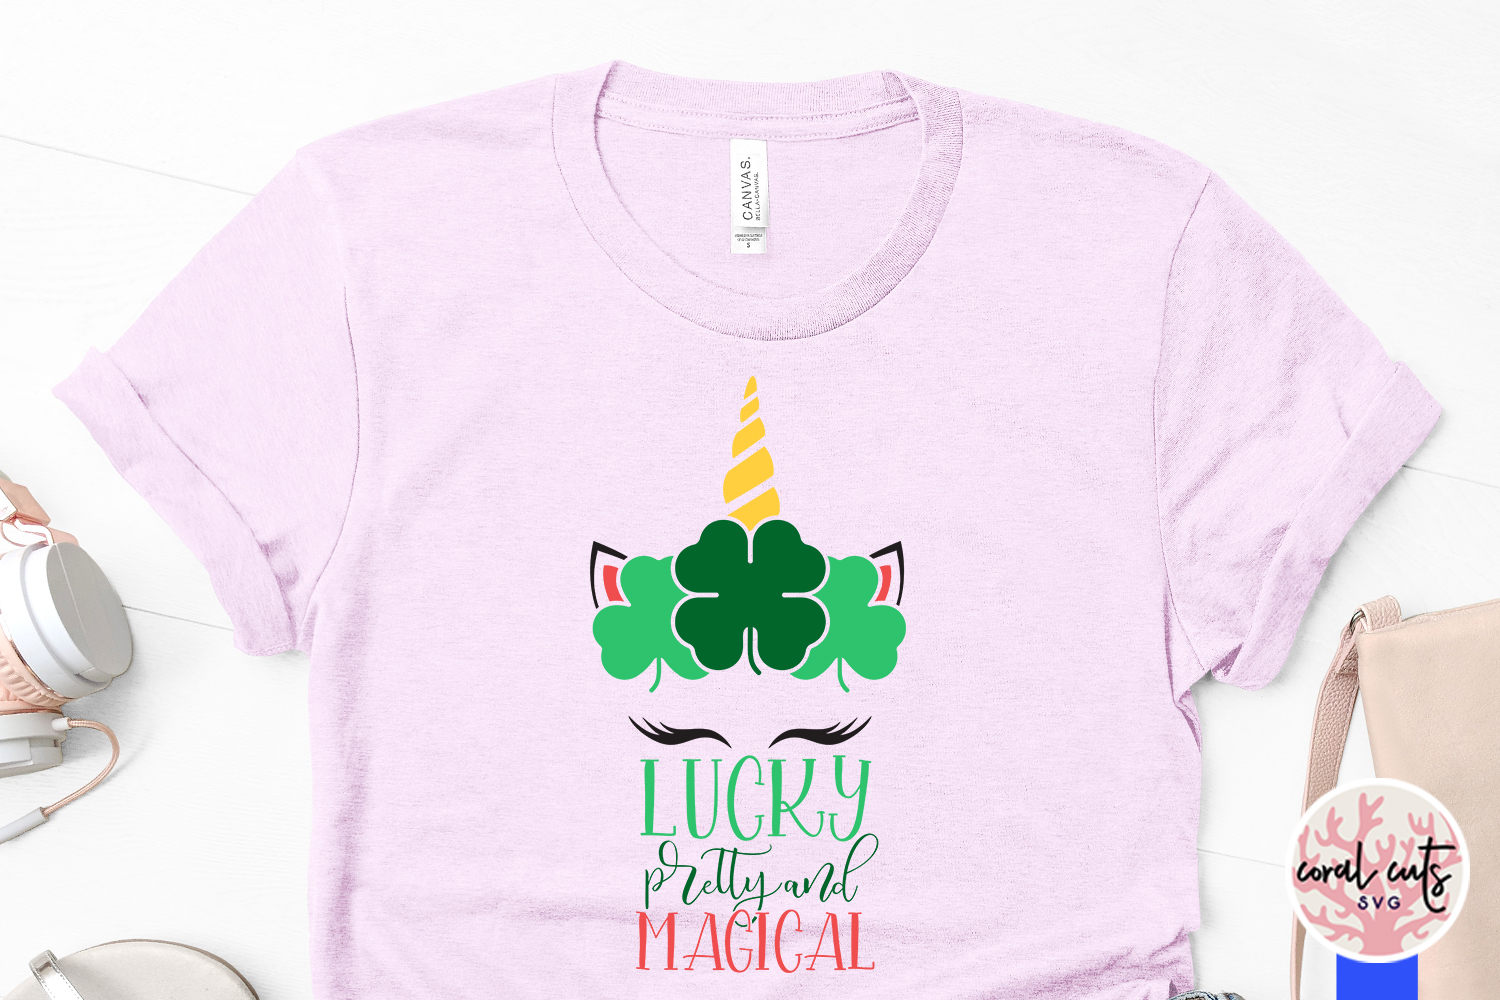 Lucky pretty and magical - St. Patrick's Day SVG EPS DXF PNG example image 3